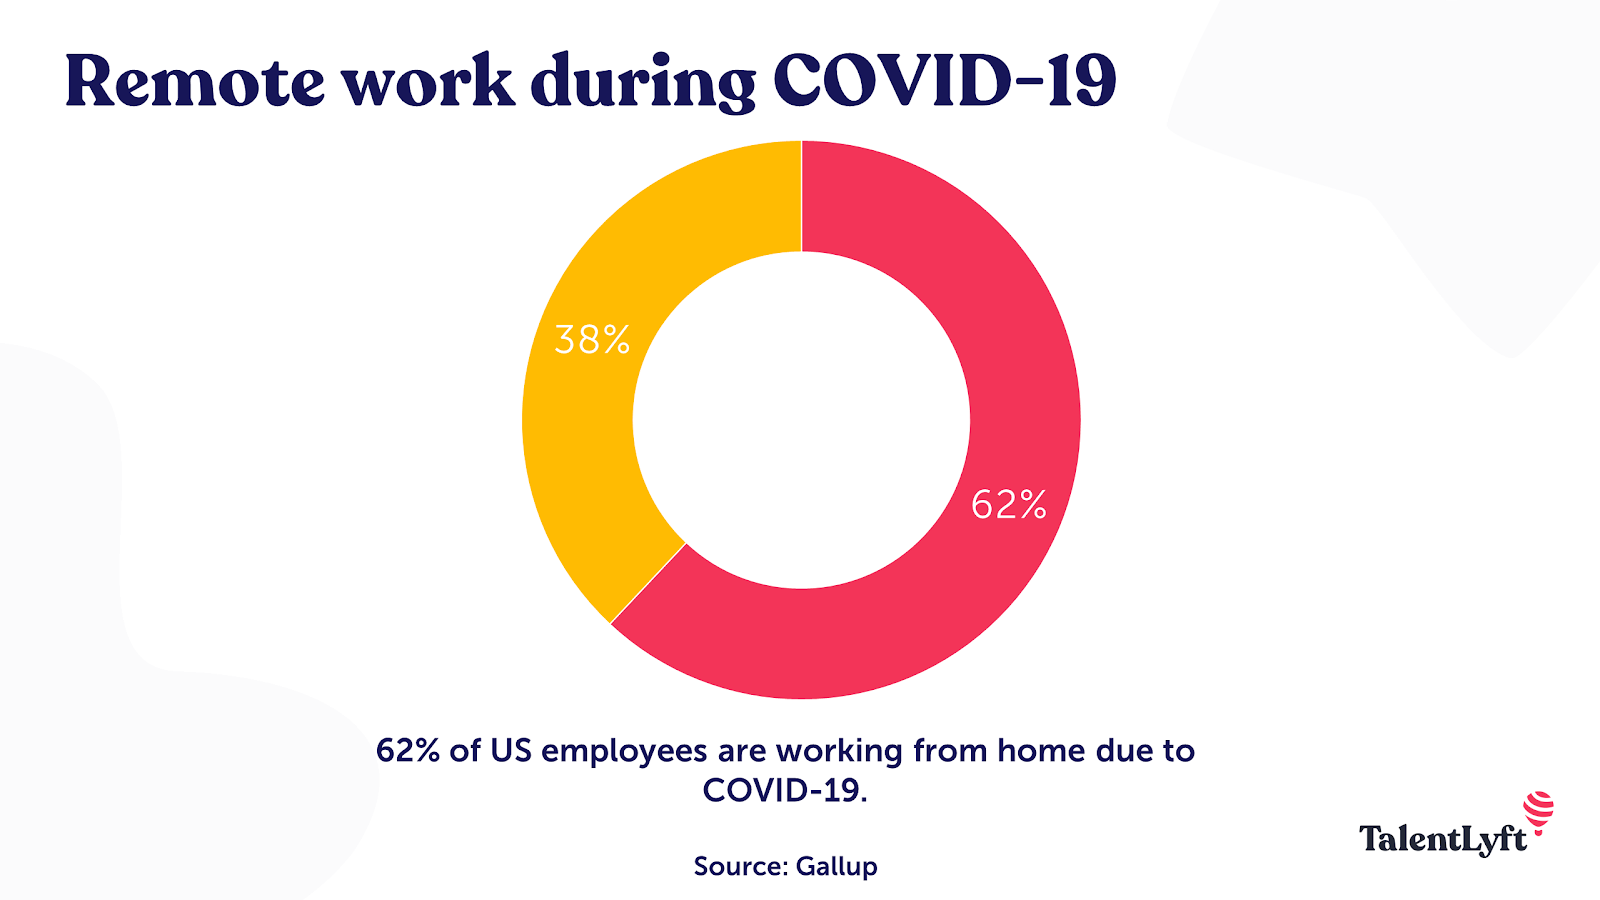 Remote work during COVID-19